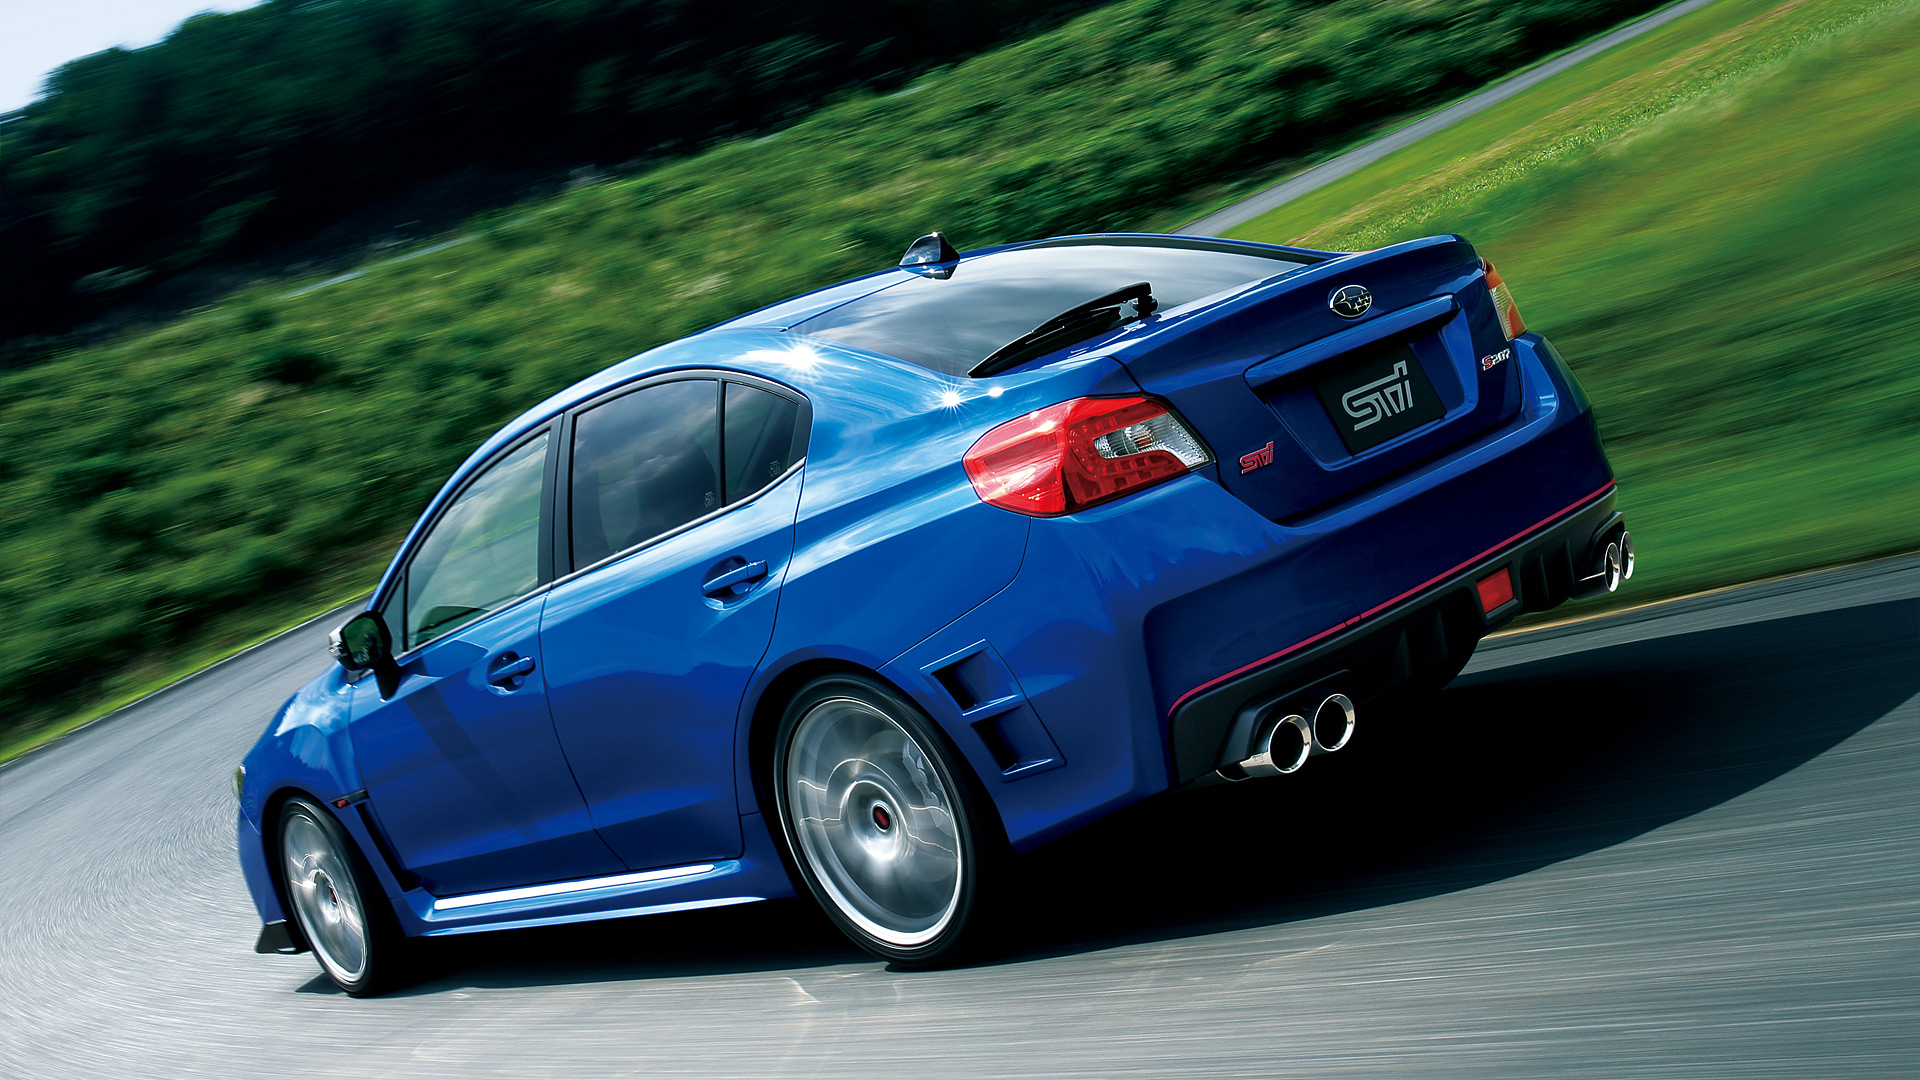 2016 Subaru WRX STI S207 Wallpapers 1920x1080